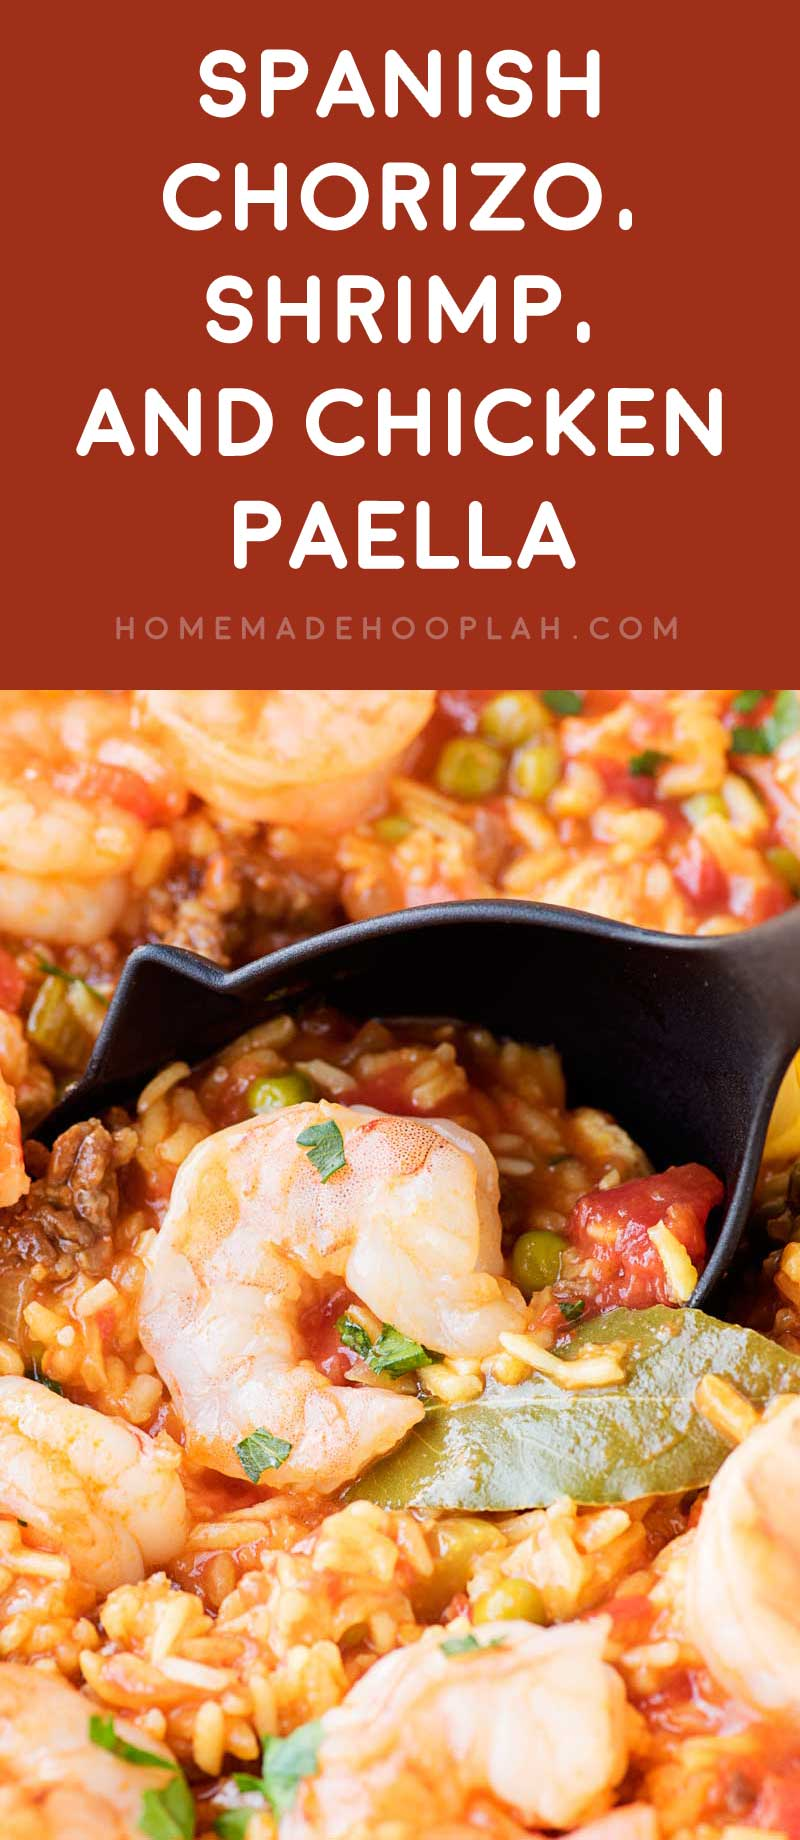 Spanish Chorizo, Shrimp, and Chicken Paella! A simple paella recipe made with chorizo, shrimp, and chicken and cooked with tomatoes, veggies, and yellow rice. It's a great one-pot meal for weeknights! #ad #vigotakesyouhome | HomemadeHooplah.com